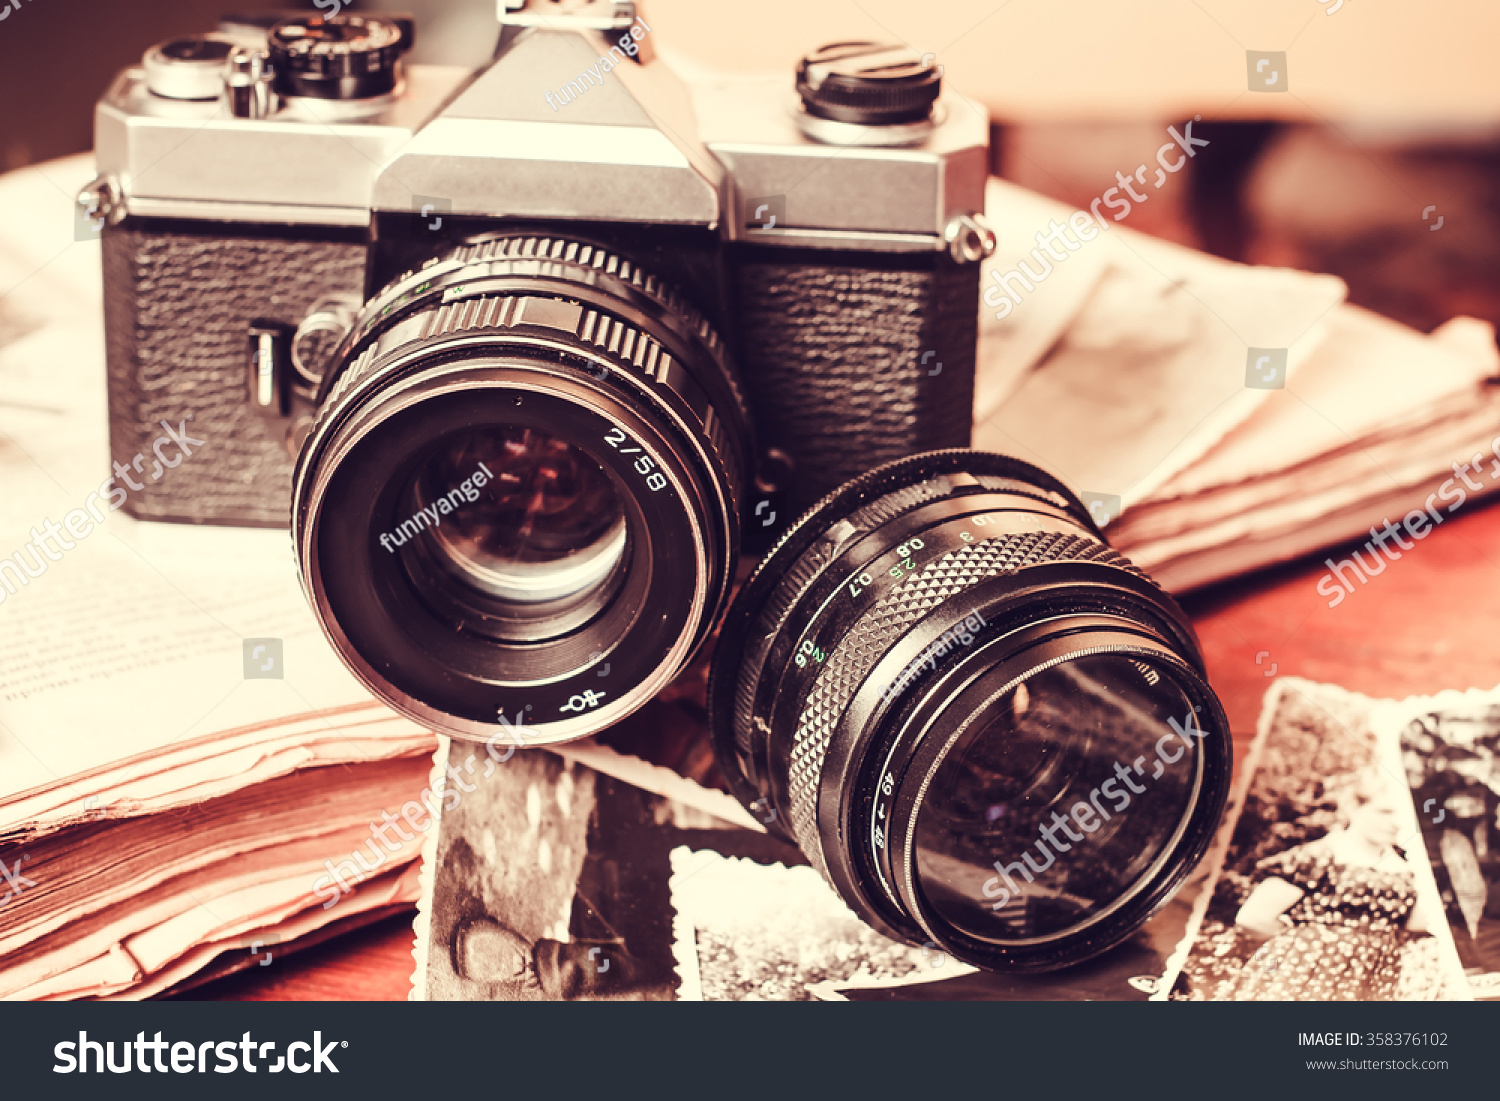 Vintage Camera Stock Photos, Images, & Pictures - 49,396 ...